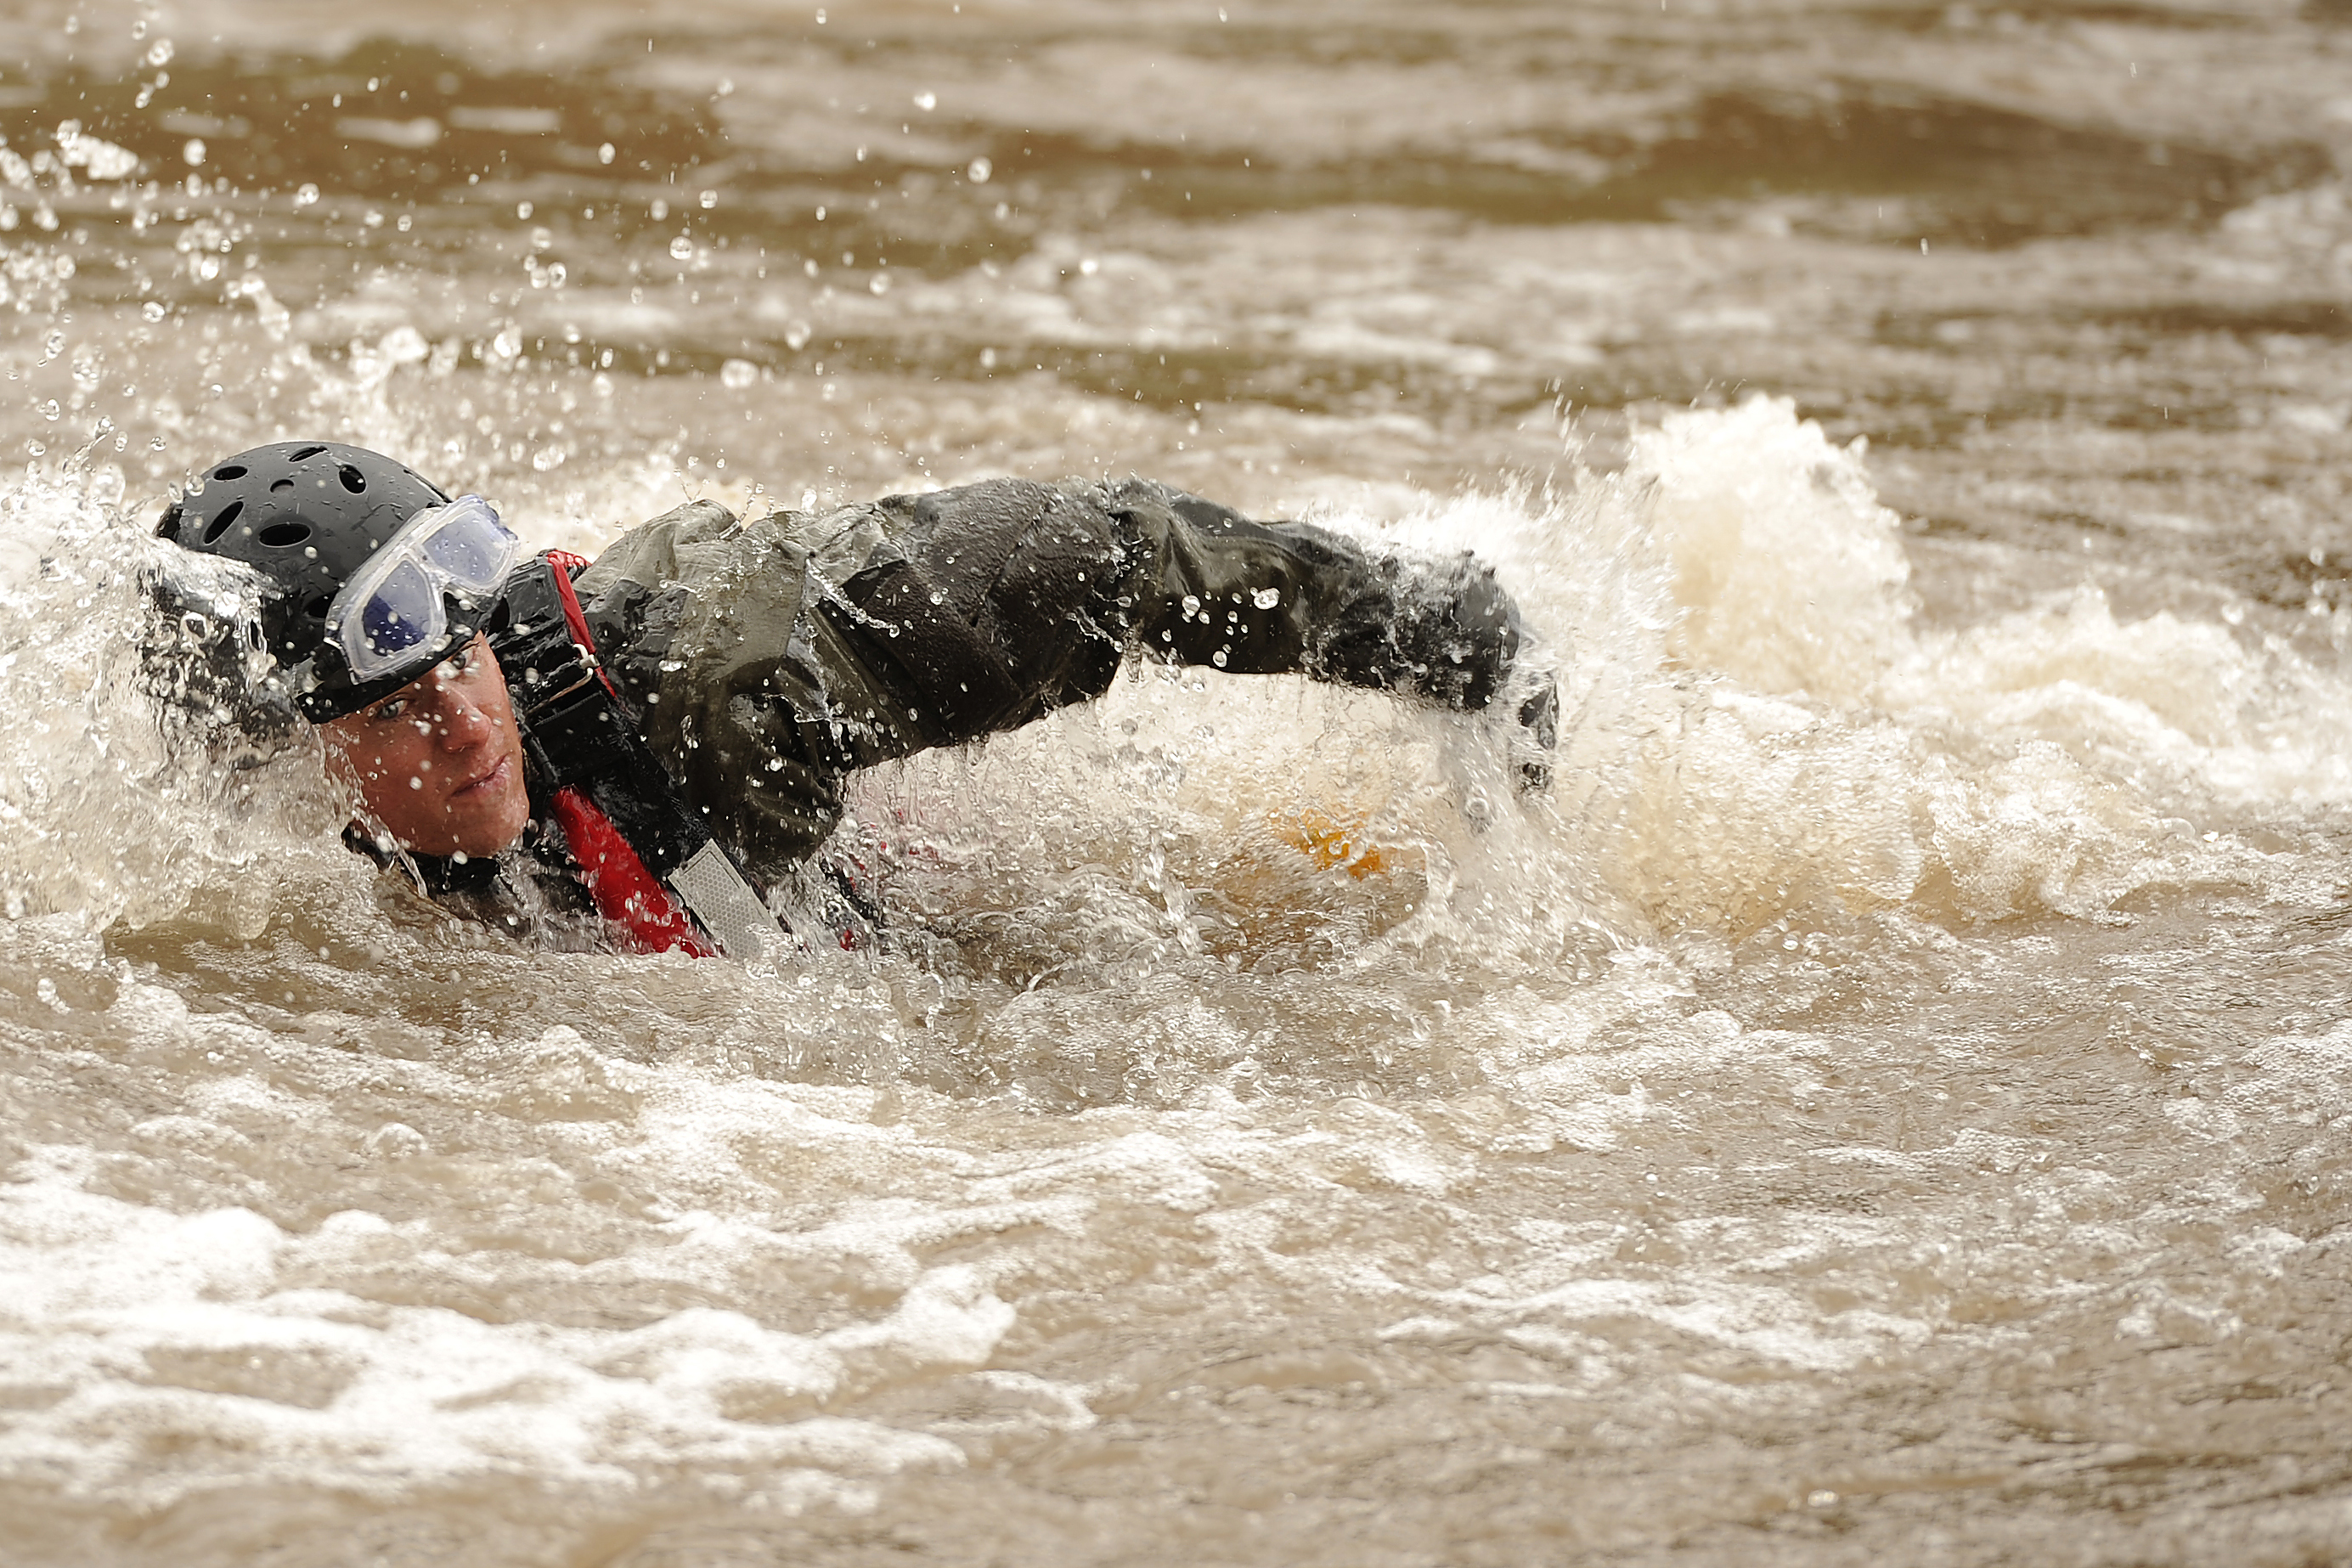 Air Force Deployment >> File:U.S. Air Force Staff Sgt. Daniel Holmes battles the current as he conducts swift water ...